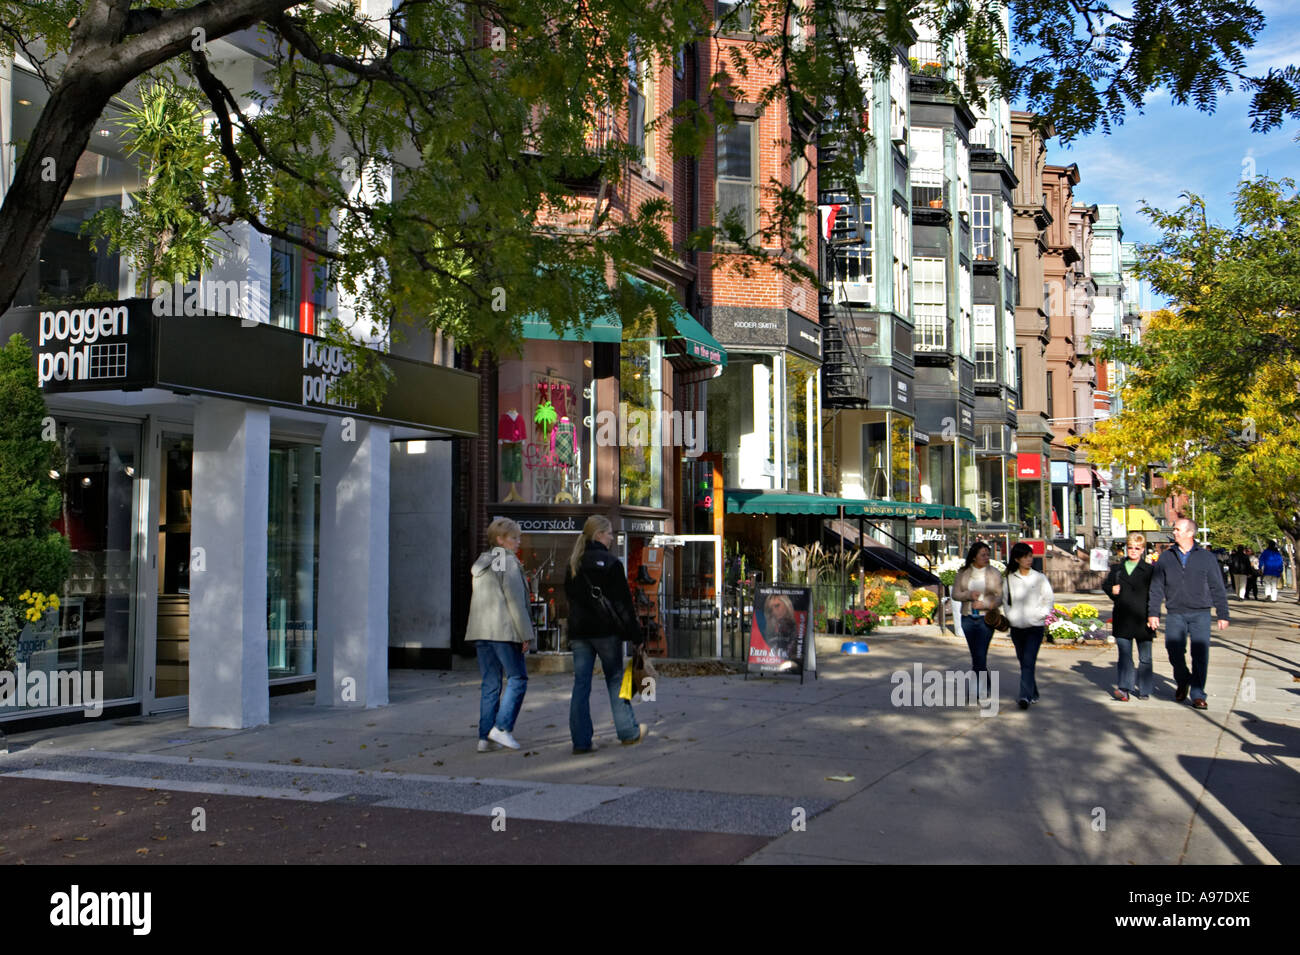 Shopping in the Back Bay is more than a single day affair. The Prudential Center, Copley Place and Newbury Street house some of the best shopping in the city. Condensed into one section of the.